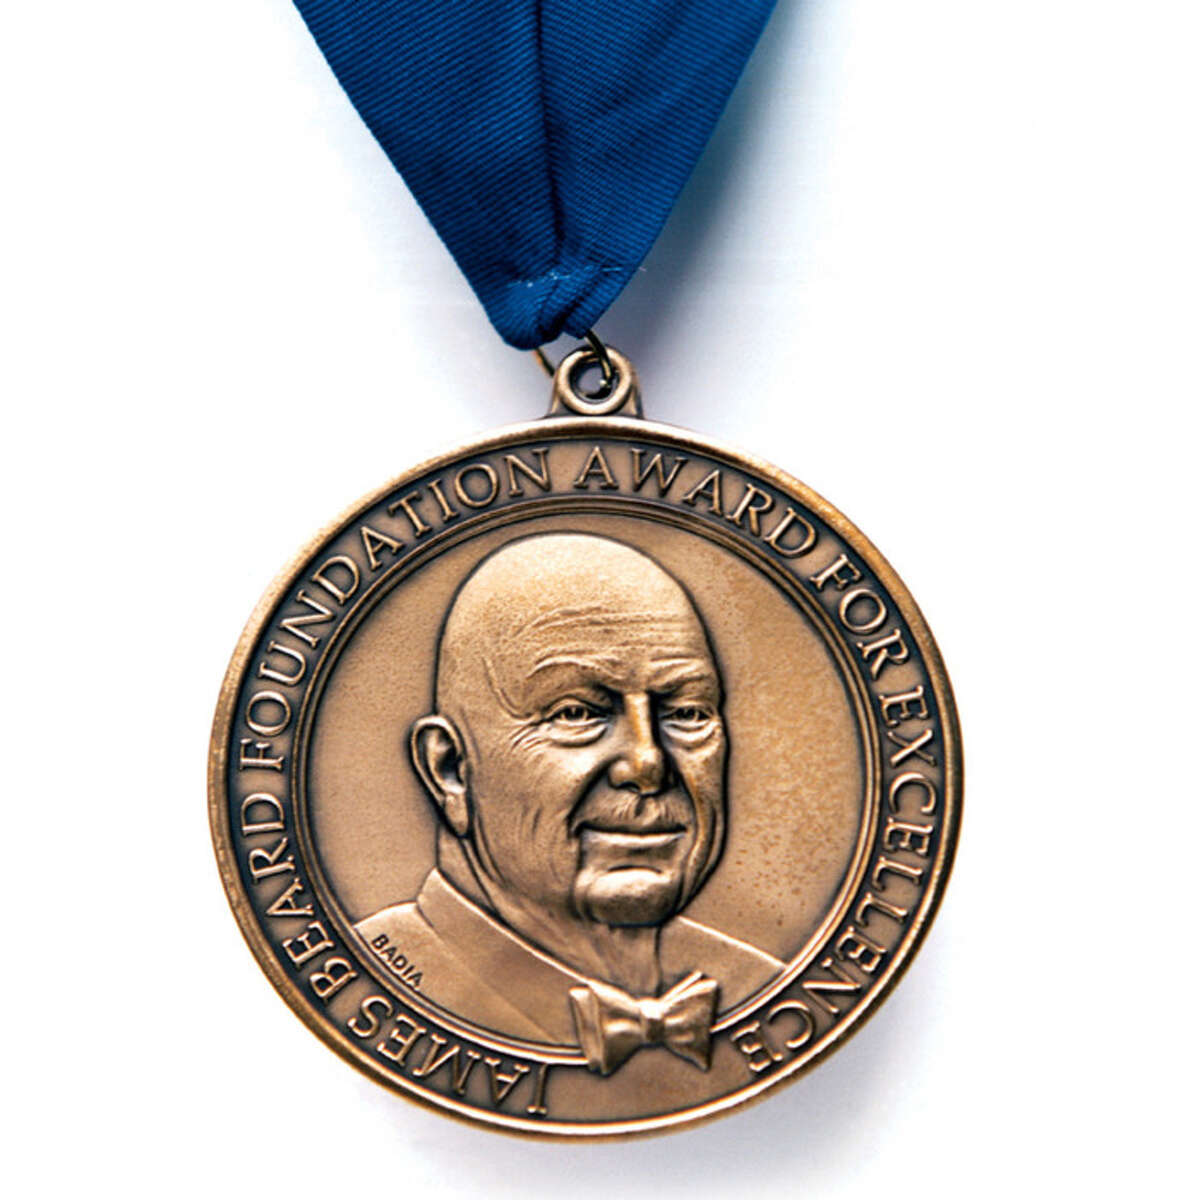 The James Beard Awards have recognized Texas as its own distinct culinary region for the regional chef awards. Beginning with the 2020 awards, Texas chefs will compete only against themselves for Best Chef Texas.